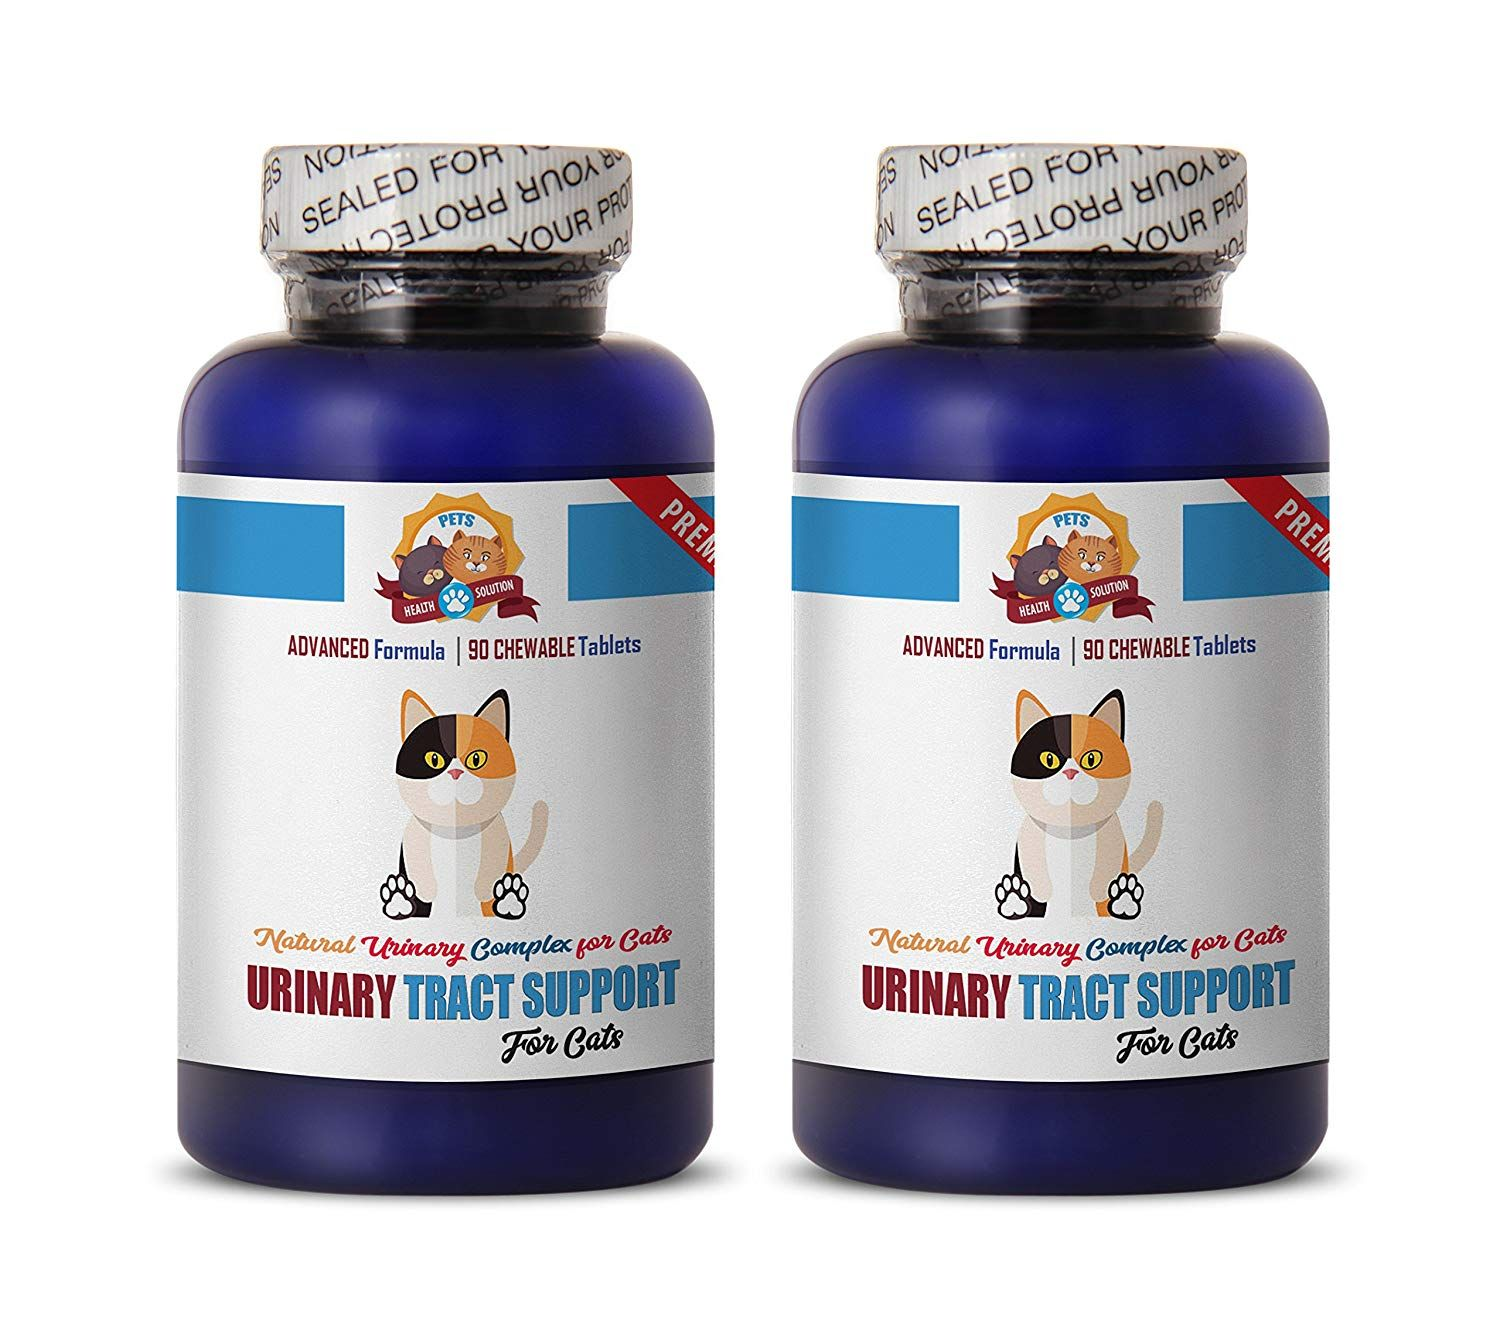 Pets Health Solution Urinary Supplements For Cats Premium Urinary Tract Support Cat Treats Natural In 2020 With Images Pet Health Cat Allergies Relief Immune System Boosters